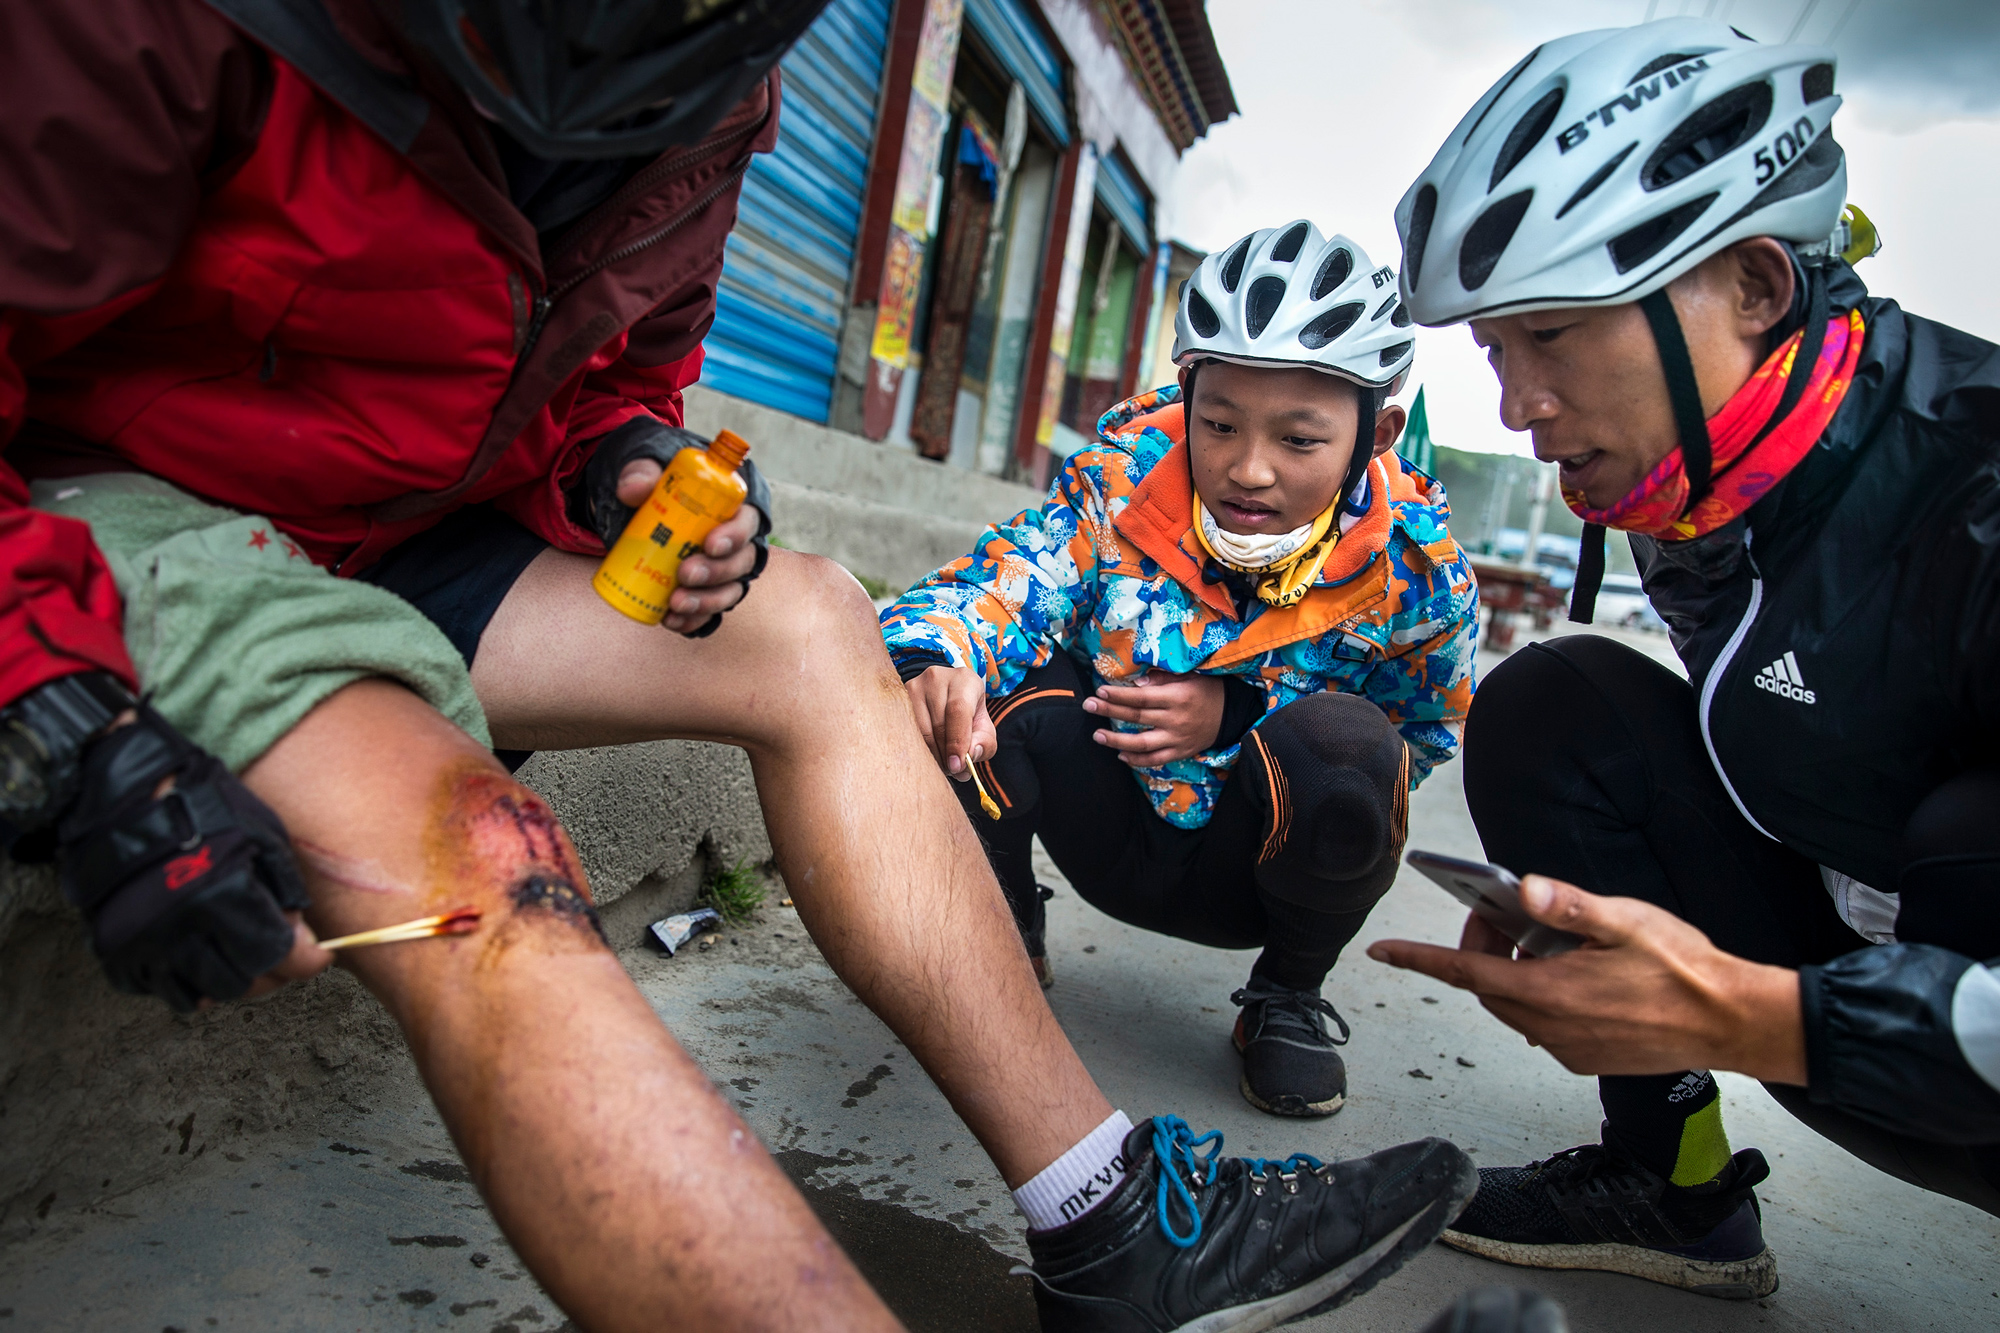 Chao and Runxi help an injured biker in Lhasa, Tibet, August 6.